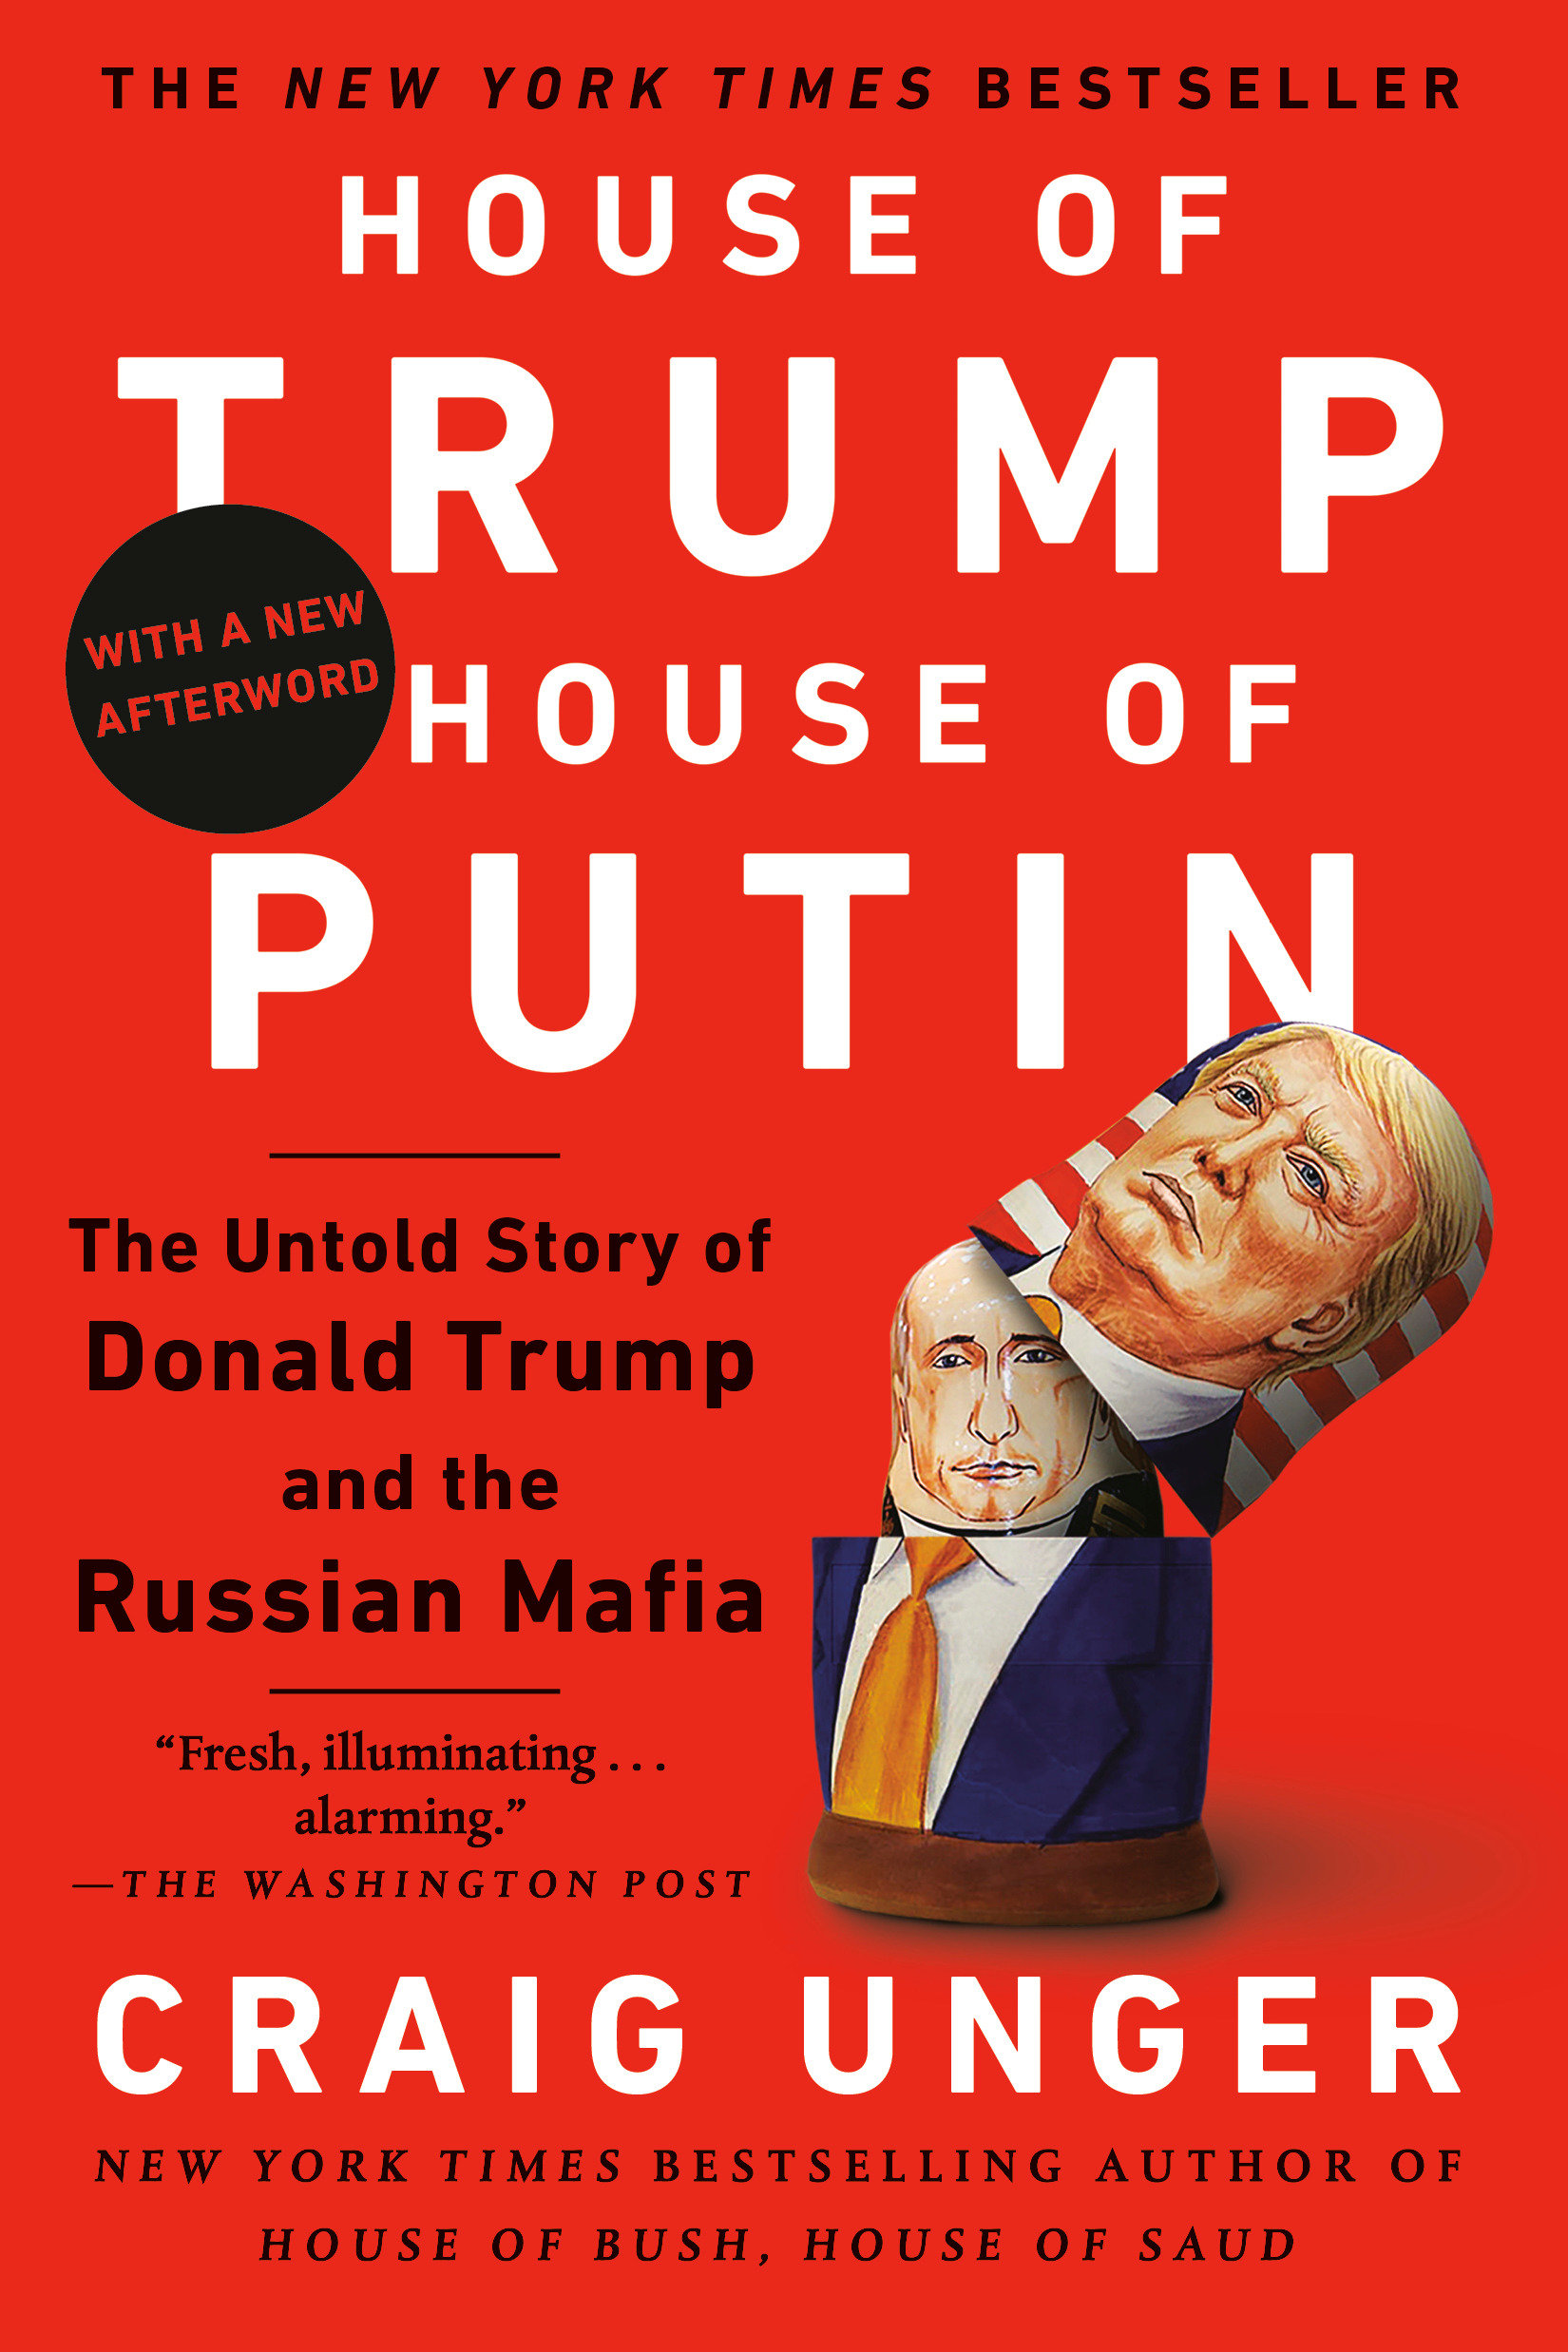 House of Trump, house of Putin the untold story of Donald Trump and the Russian mafia